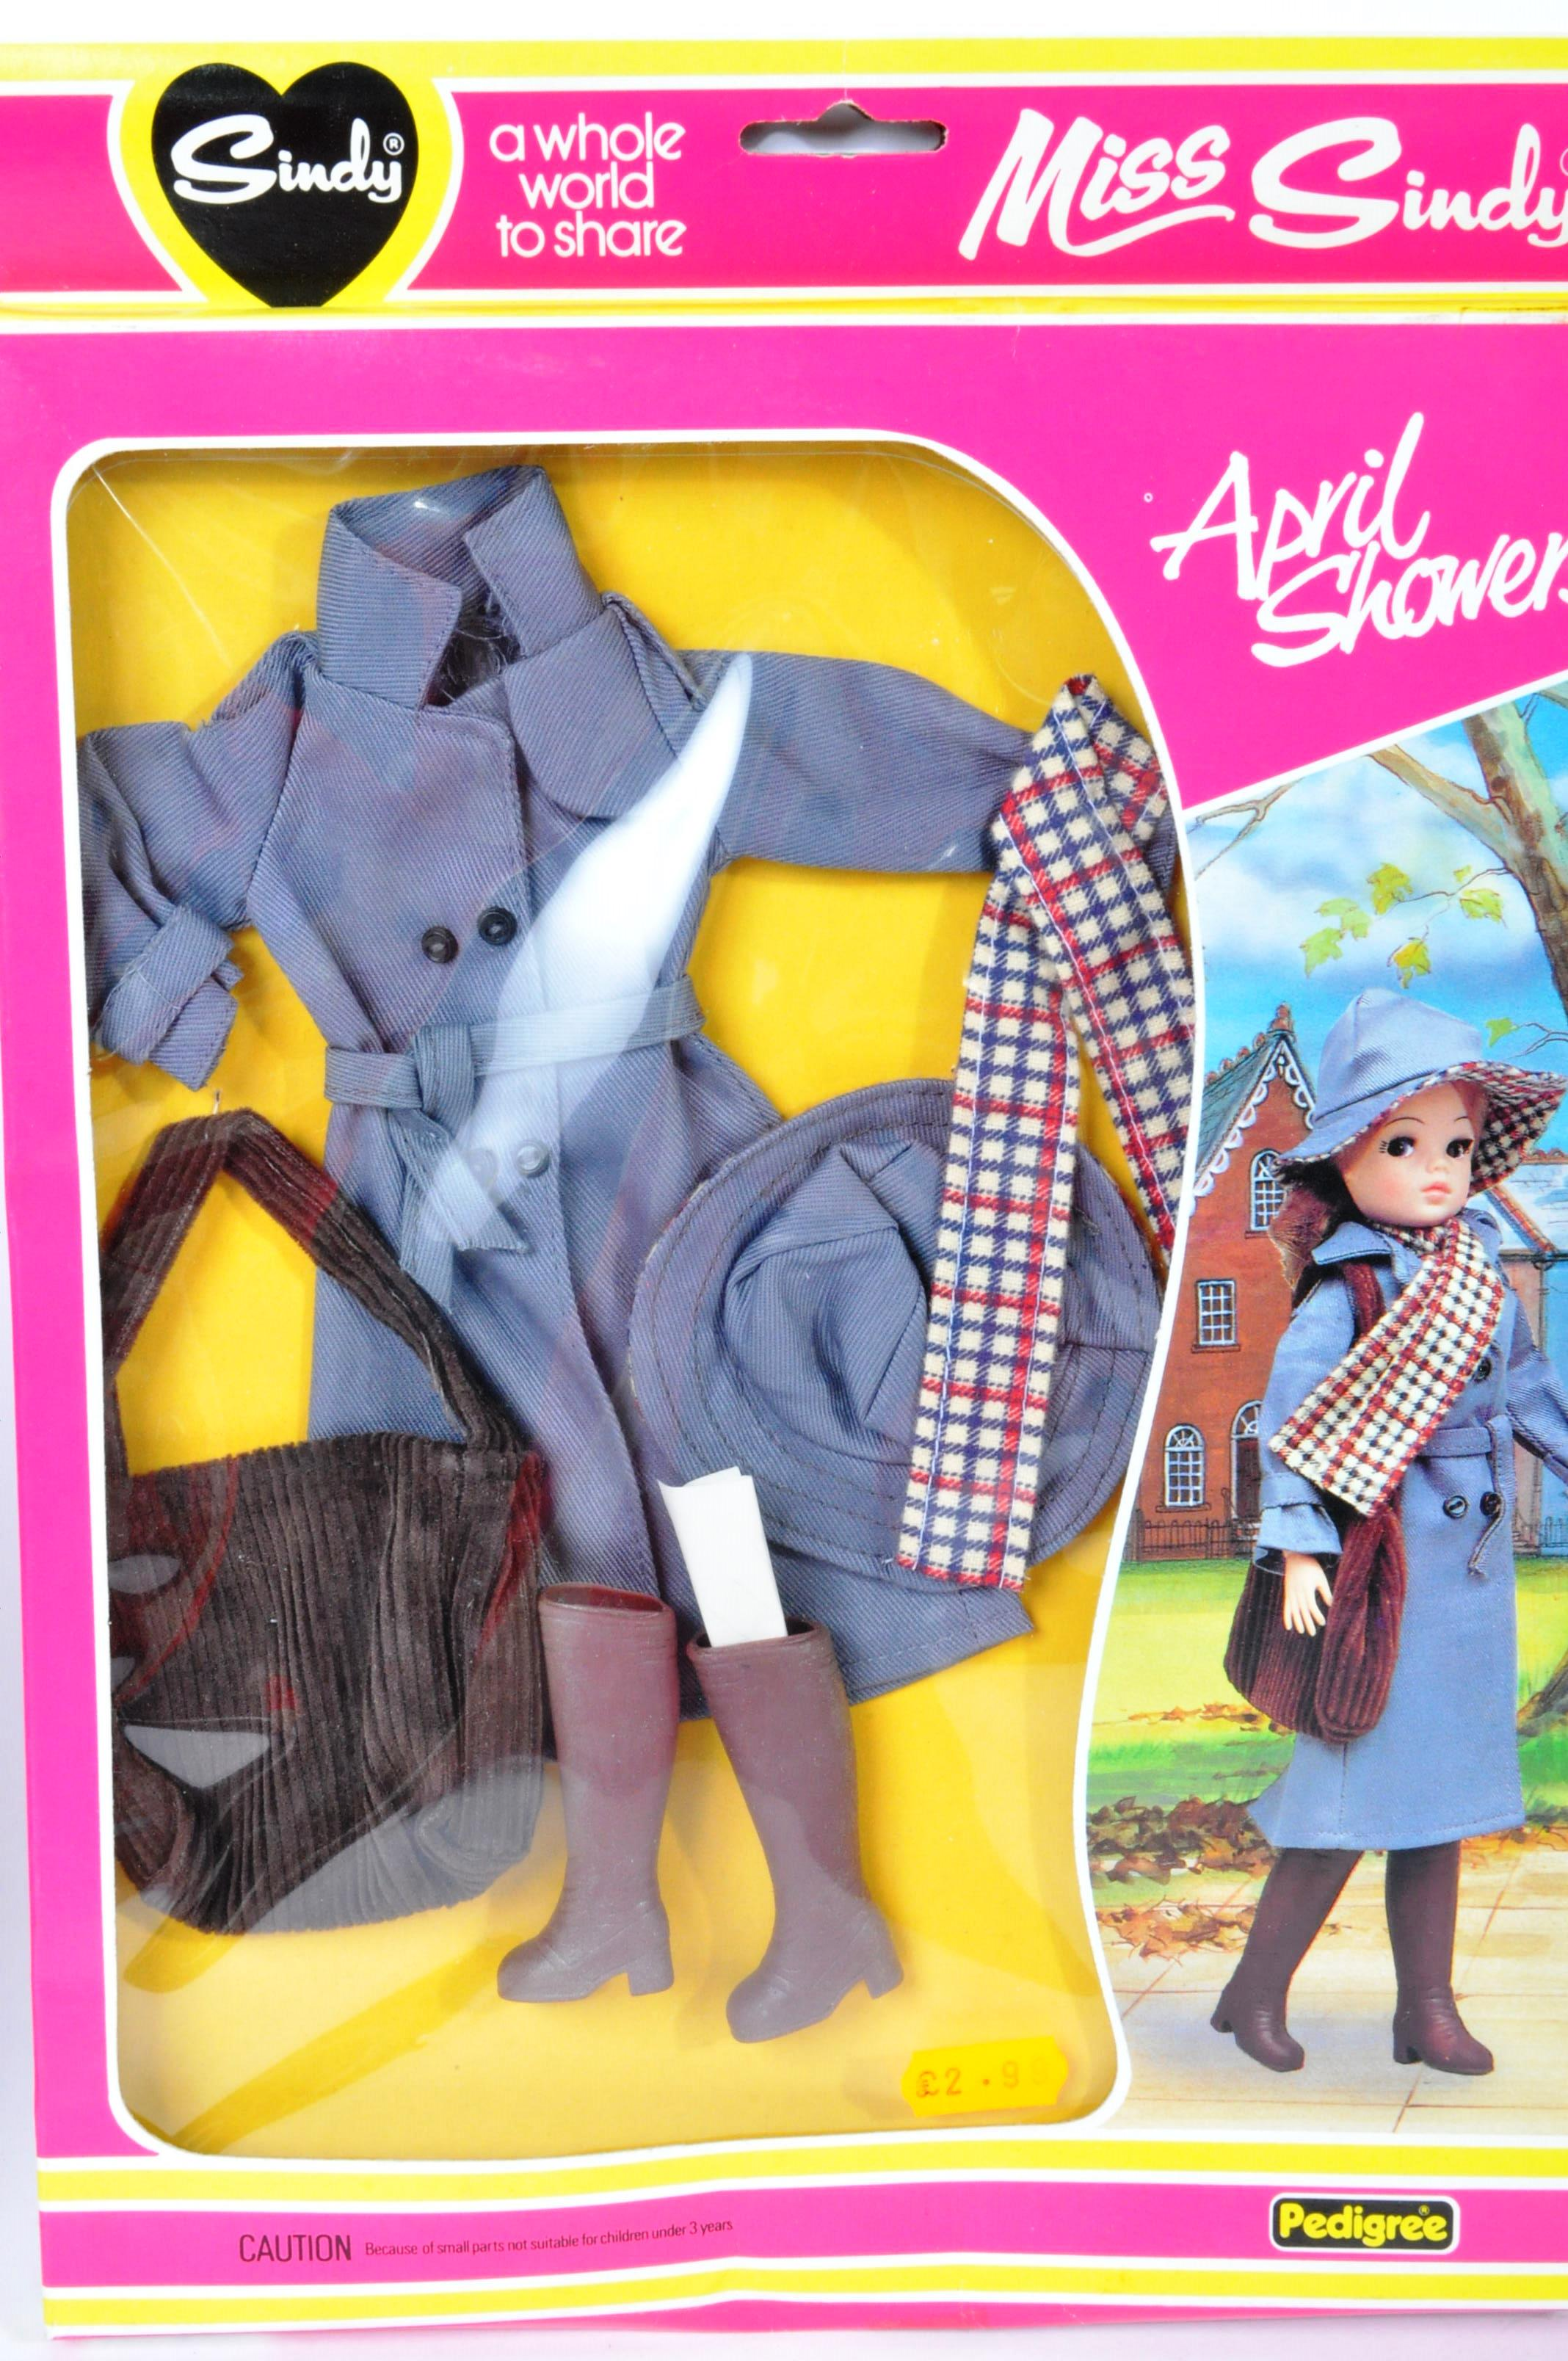 SINDY - COLLECTION OF ORIGINAL 1970S DOLLS & ACCESSORIES - Image 3 of 5